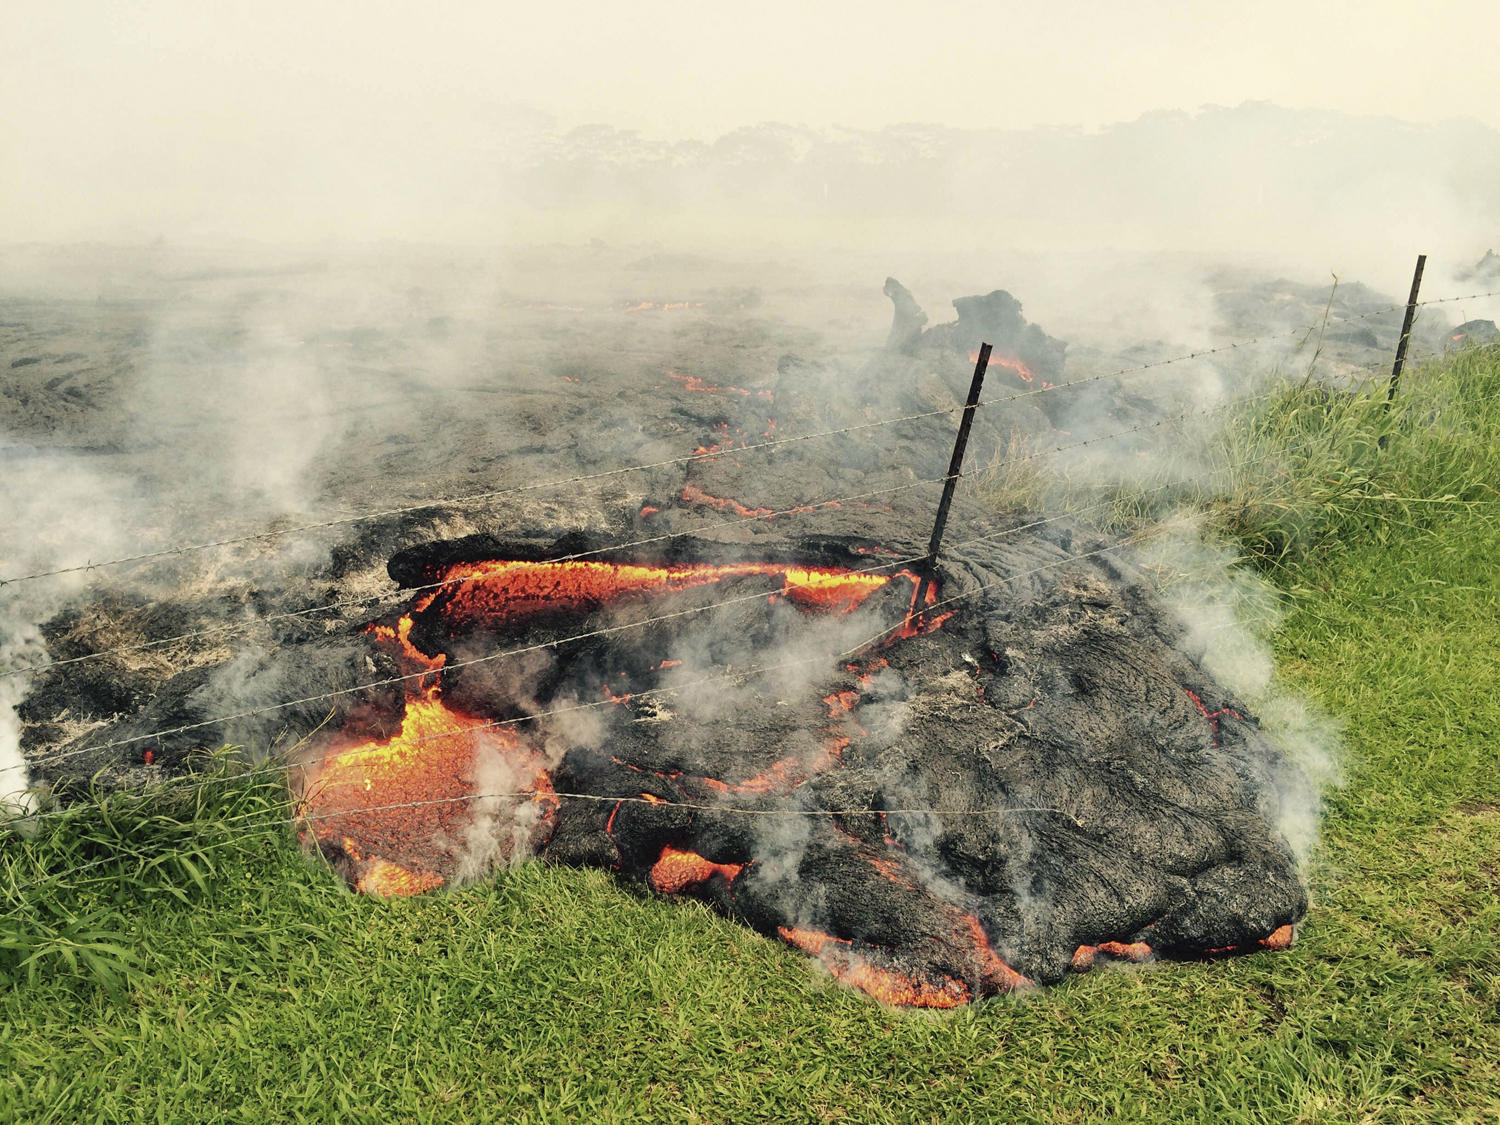 The lava flow from the Kilauea Volcano is seen advancing across a pasture between the Pahoa cemetery and Apa'a Street in this U.S. Geological Survey  image taken near the village of Pahoa, Hawaii on Oct. 25, 2014.